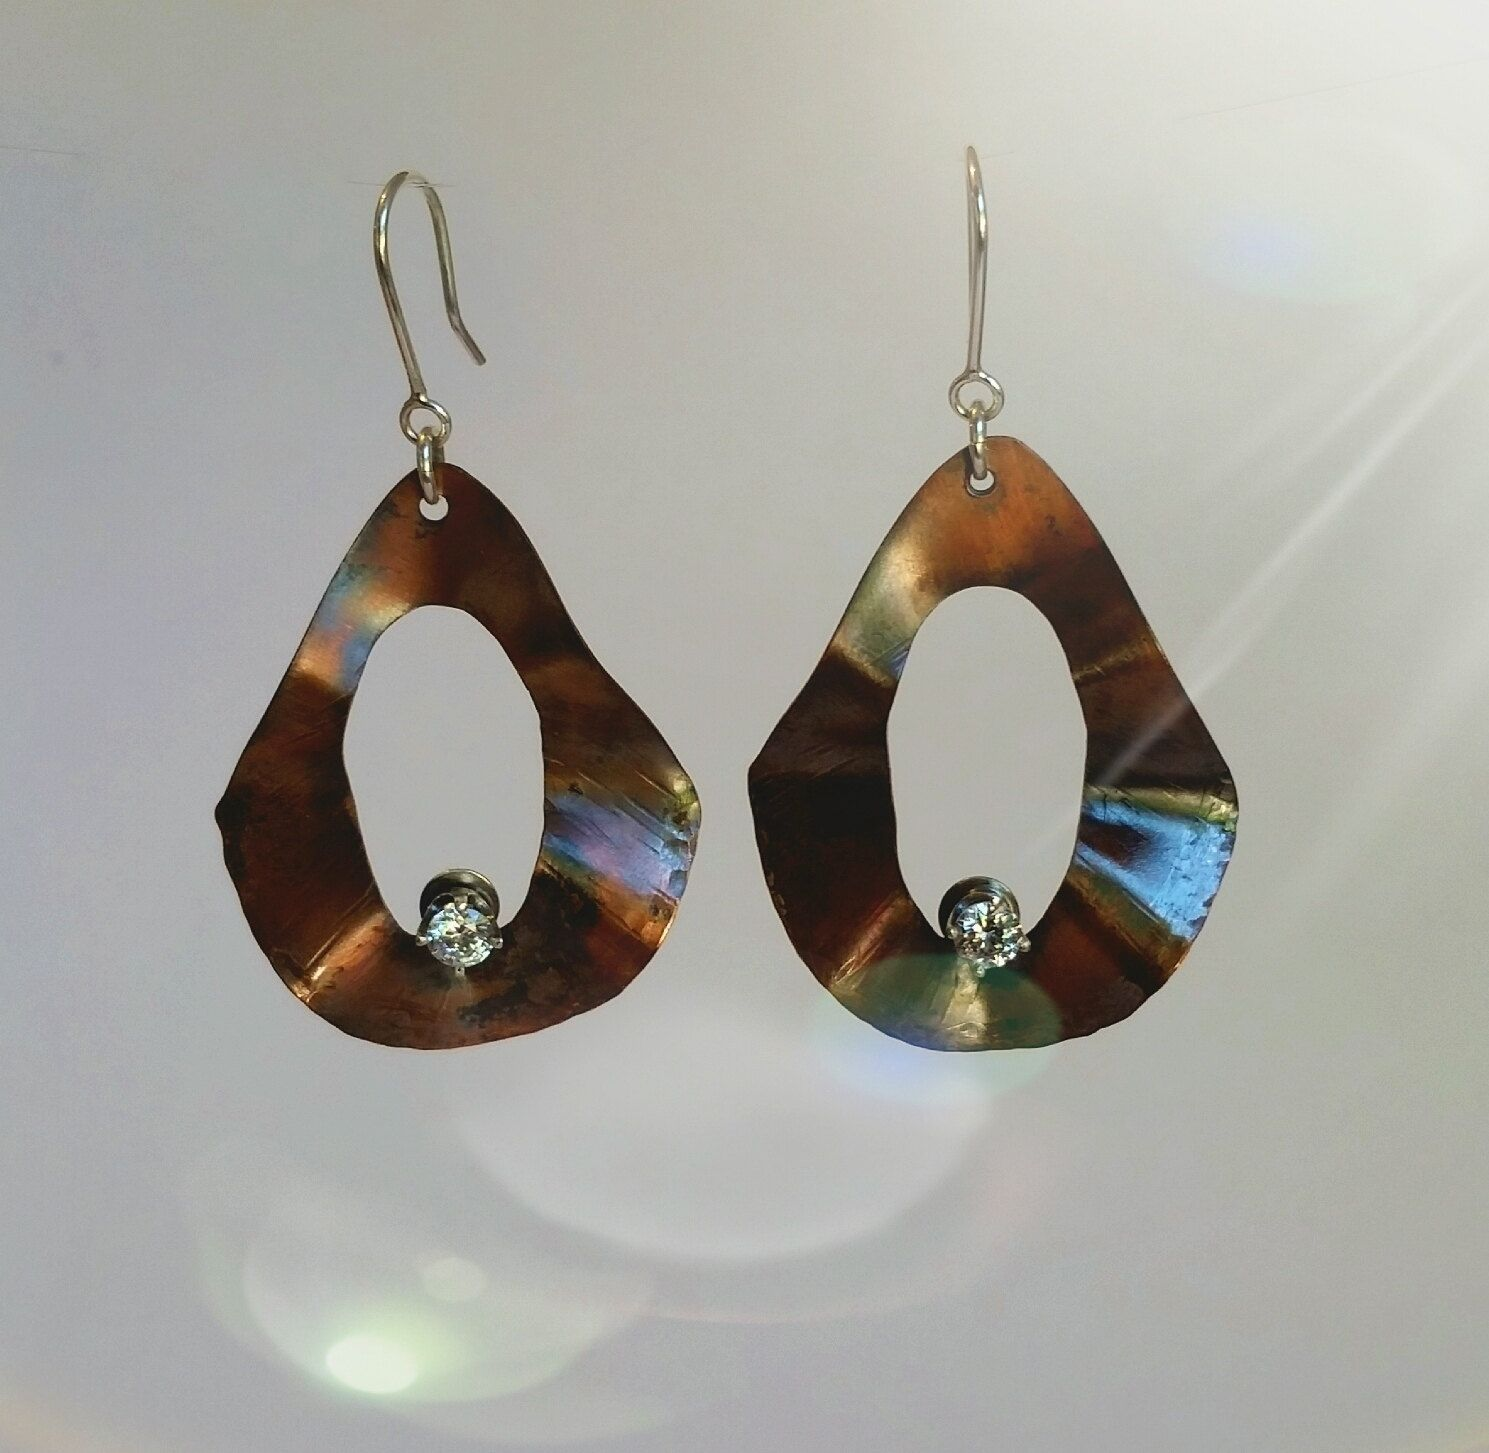 Lg. Copper Earrings with CZ Accents by CatsCreationsLLC on Etsy